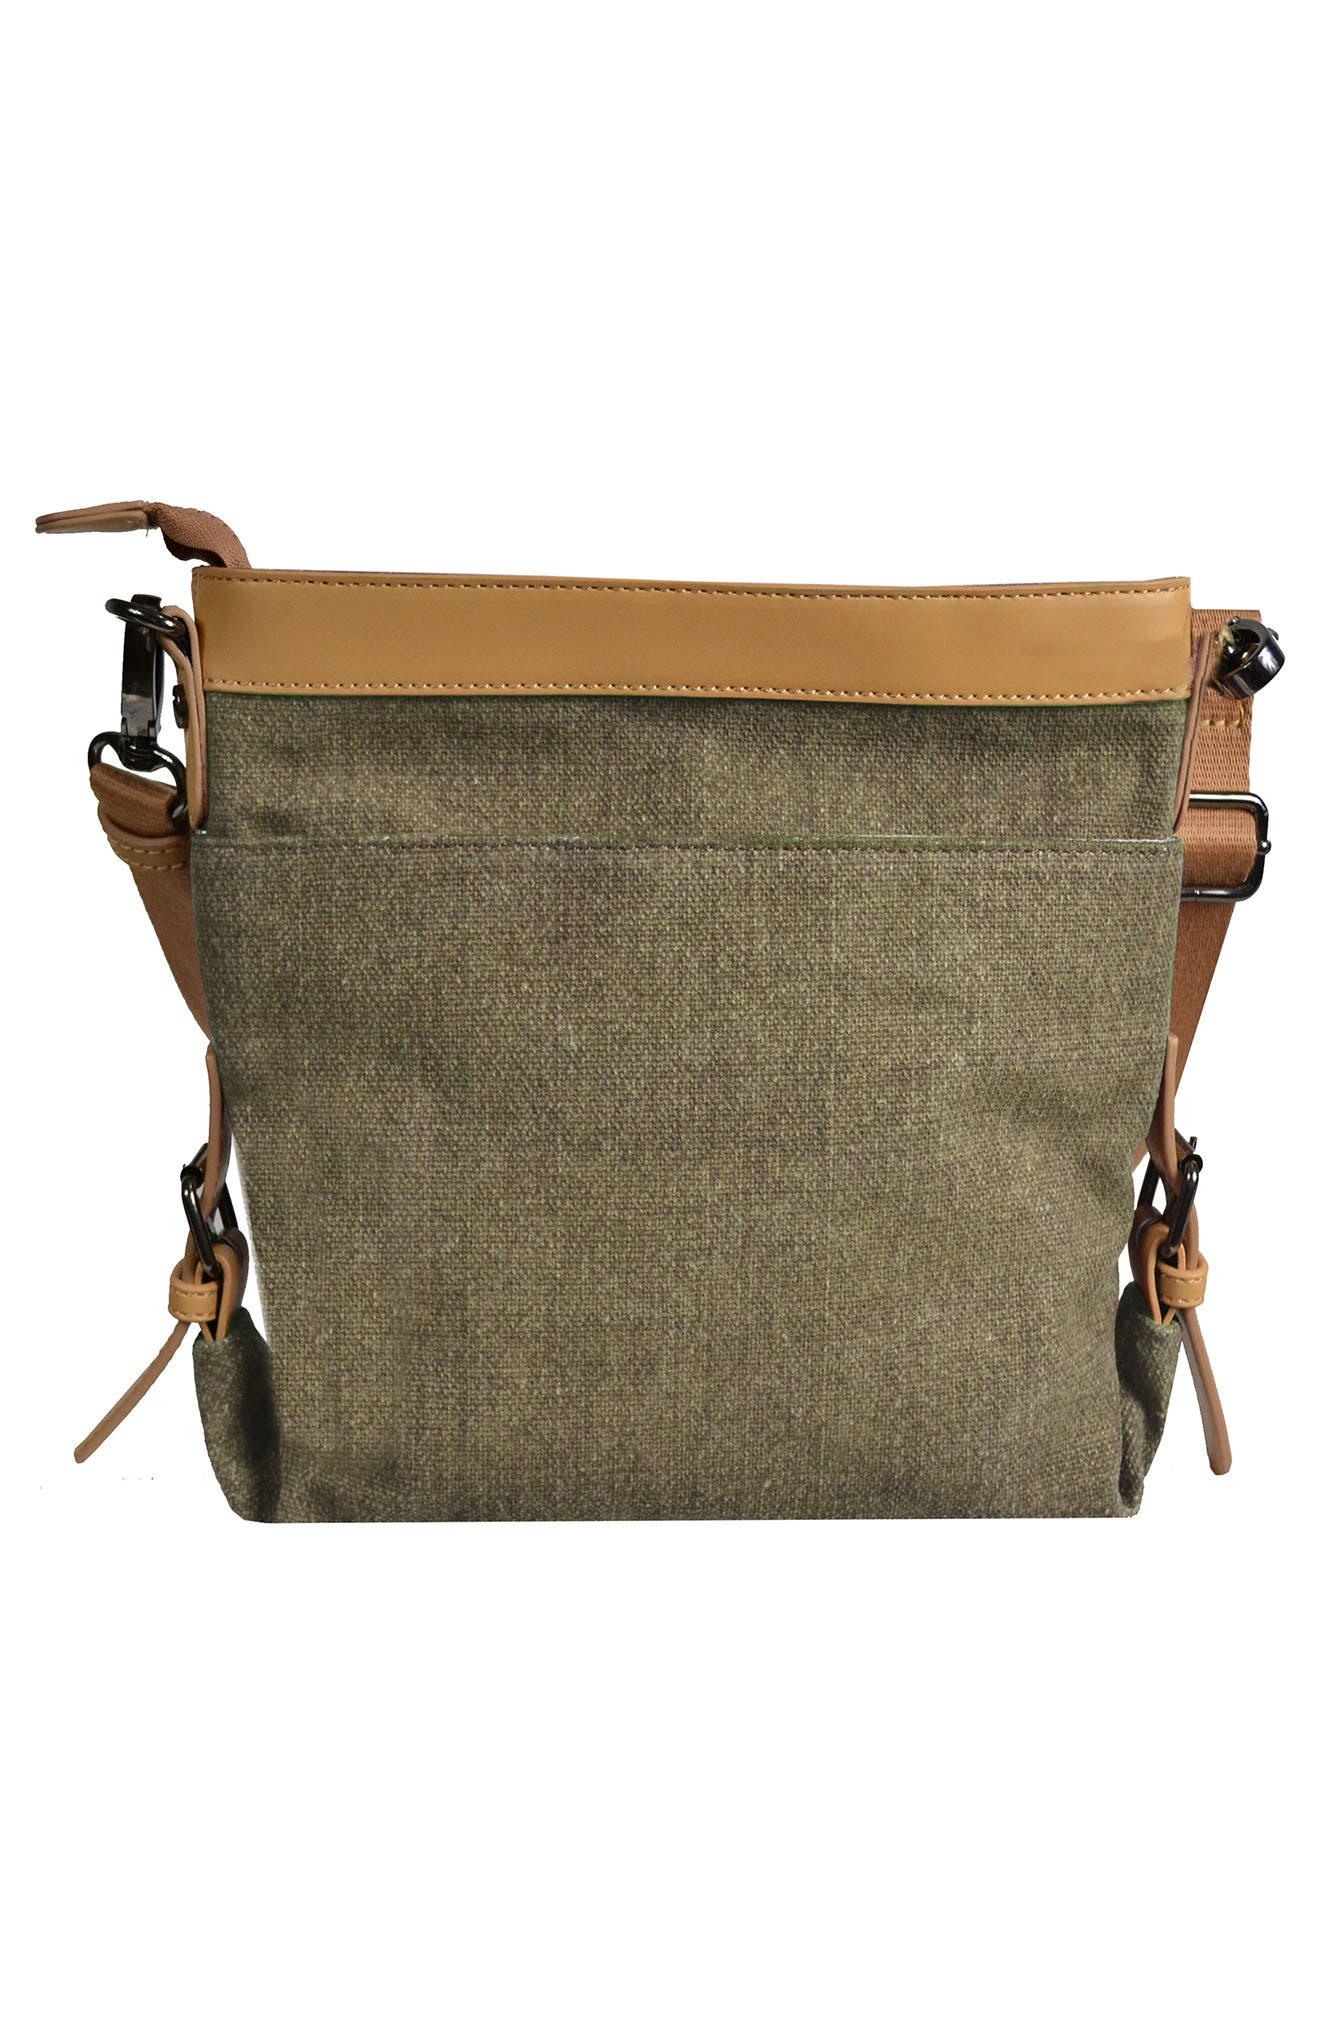 Luna Waxed Cotton Canvas Crossbody Bag,                             Alternate thumbnail 2, color,                             Fern